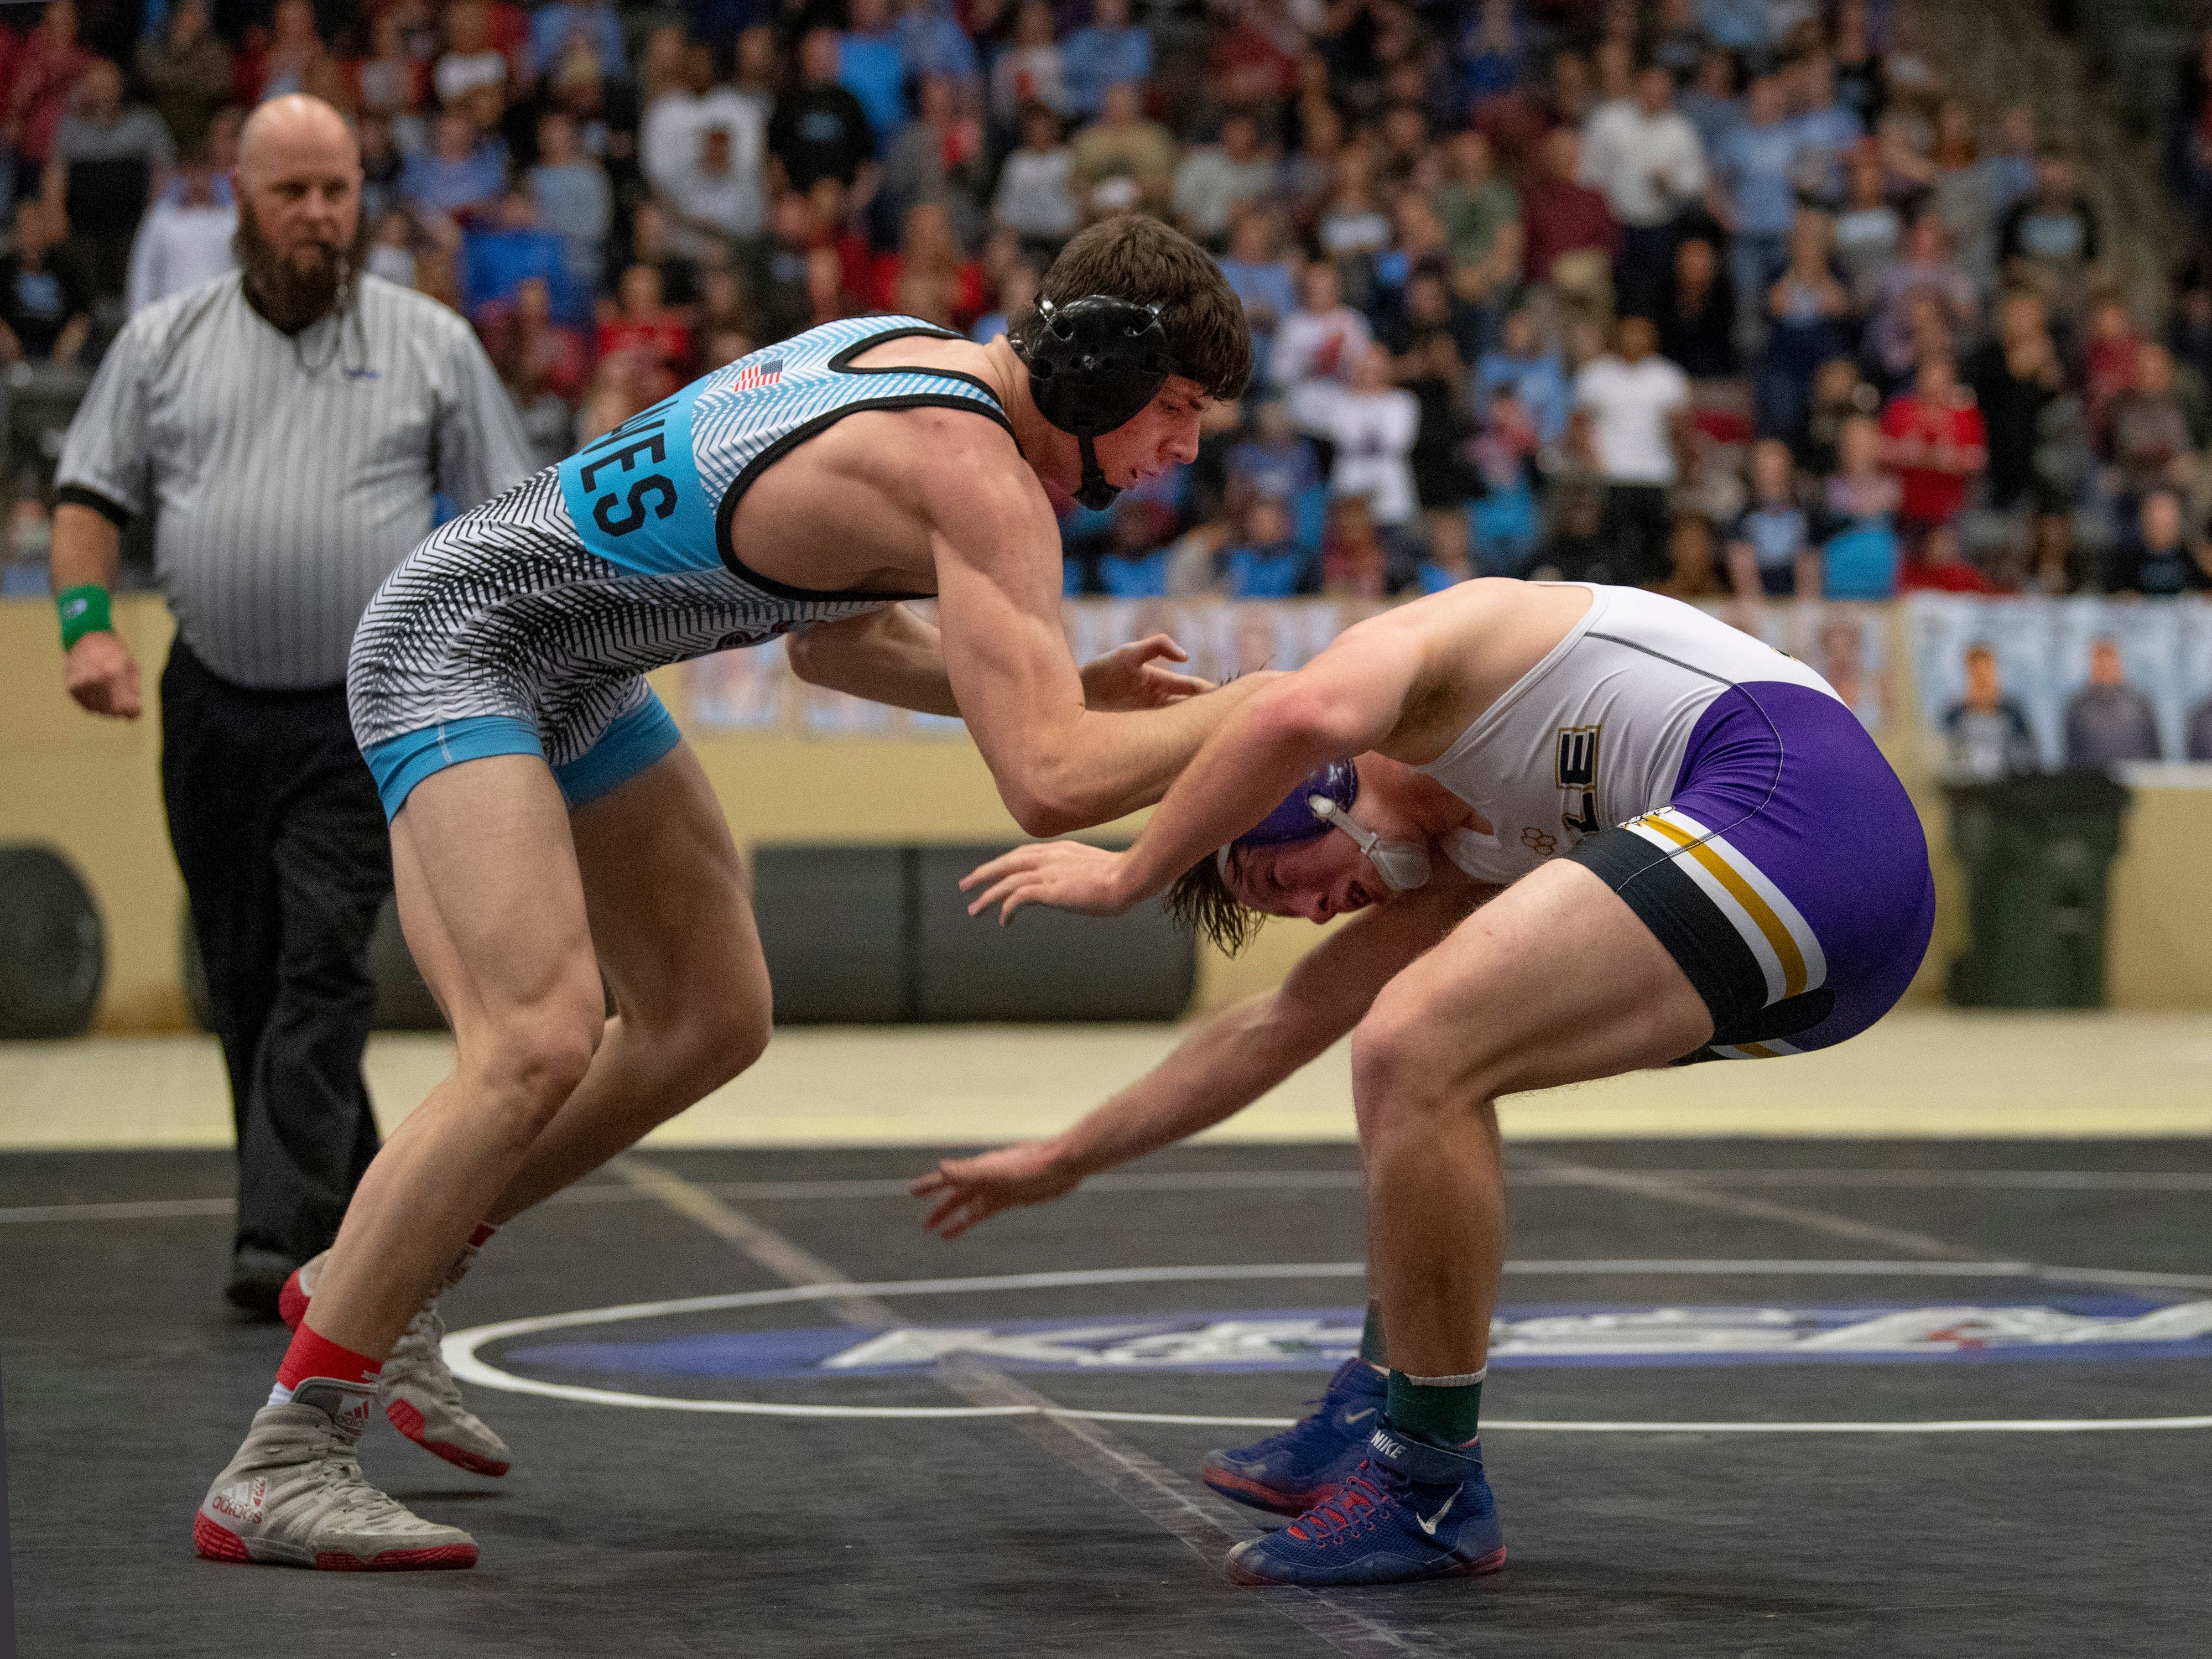 Union County's Stephen Little, left, competes against Male's Zane Brown in the 160-pound championship match at the KHSAA State Wrestling Championships at the Alltech Arena in Lexington, Ky., Saturday afternoon.